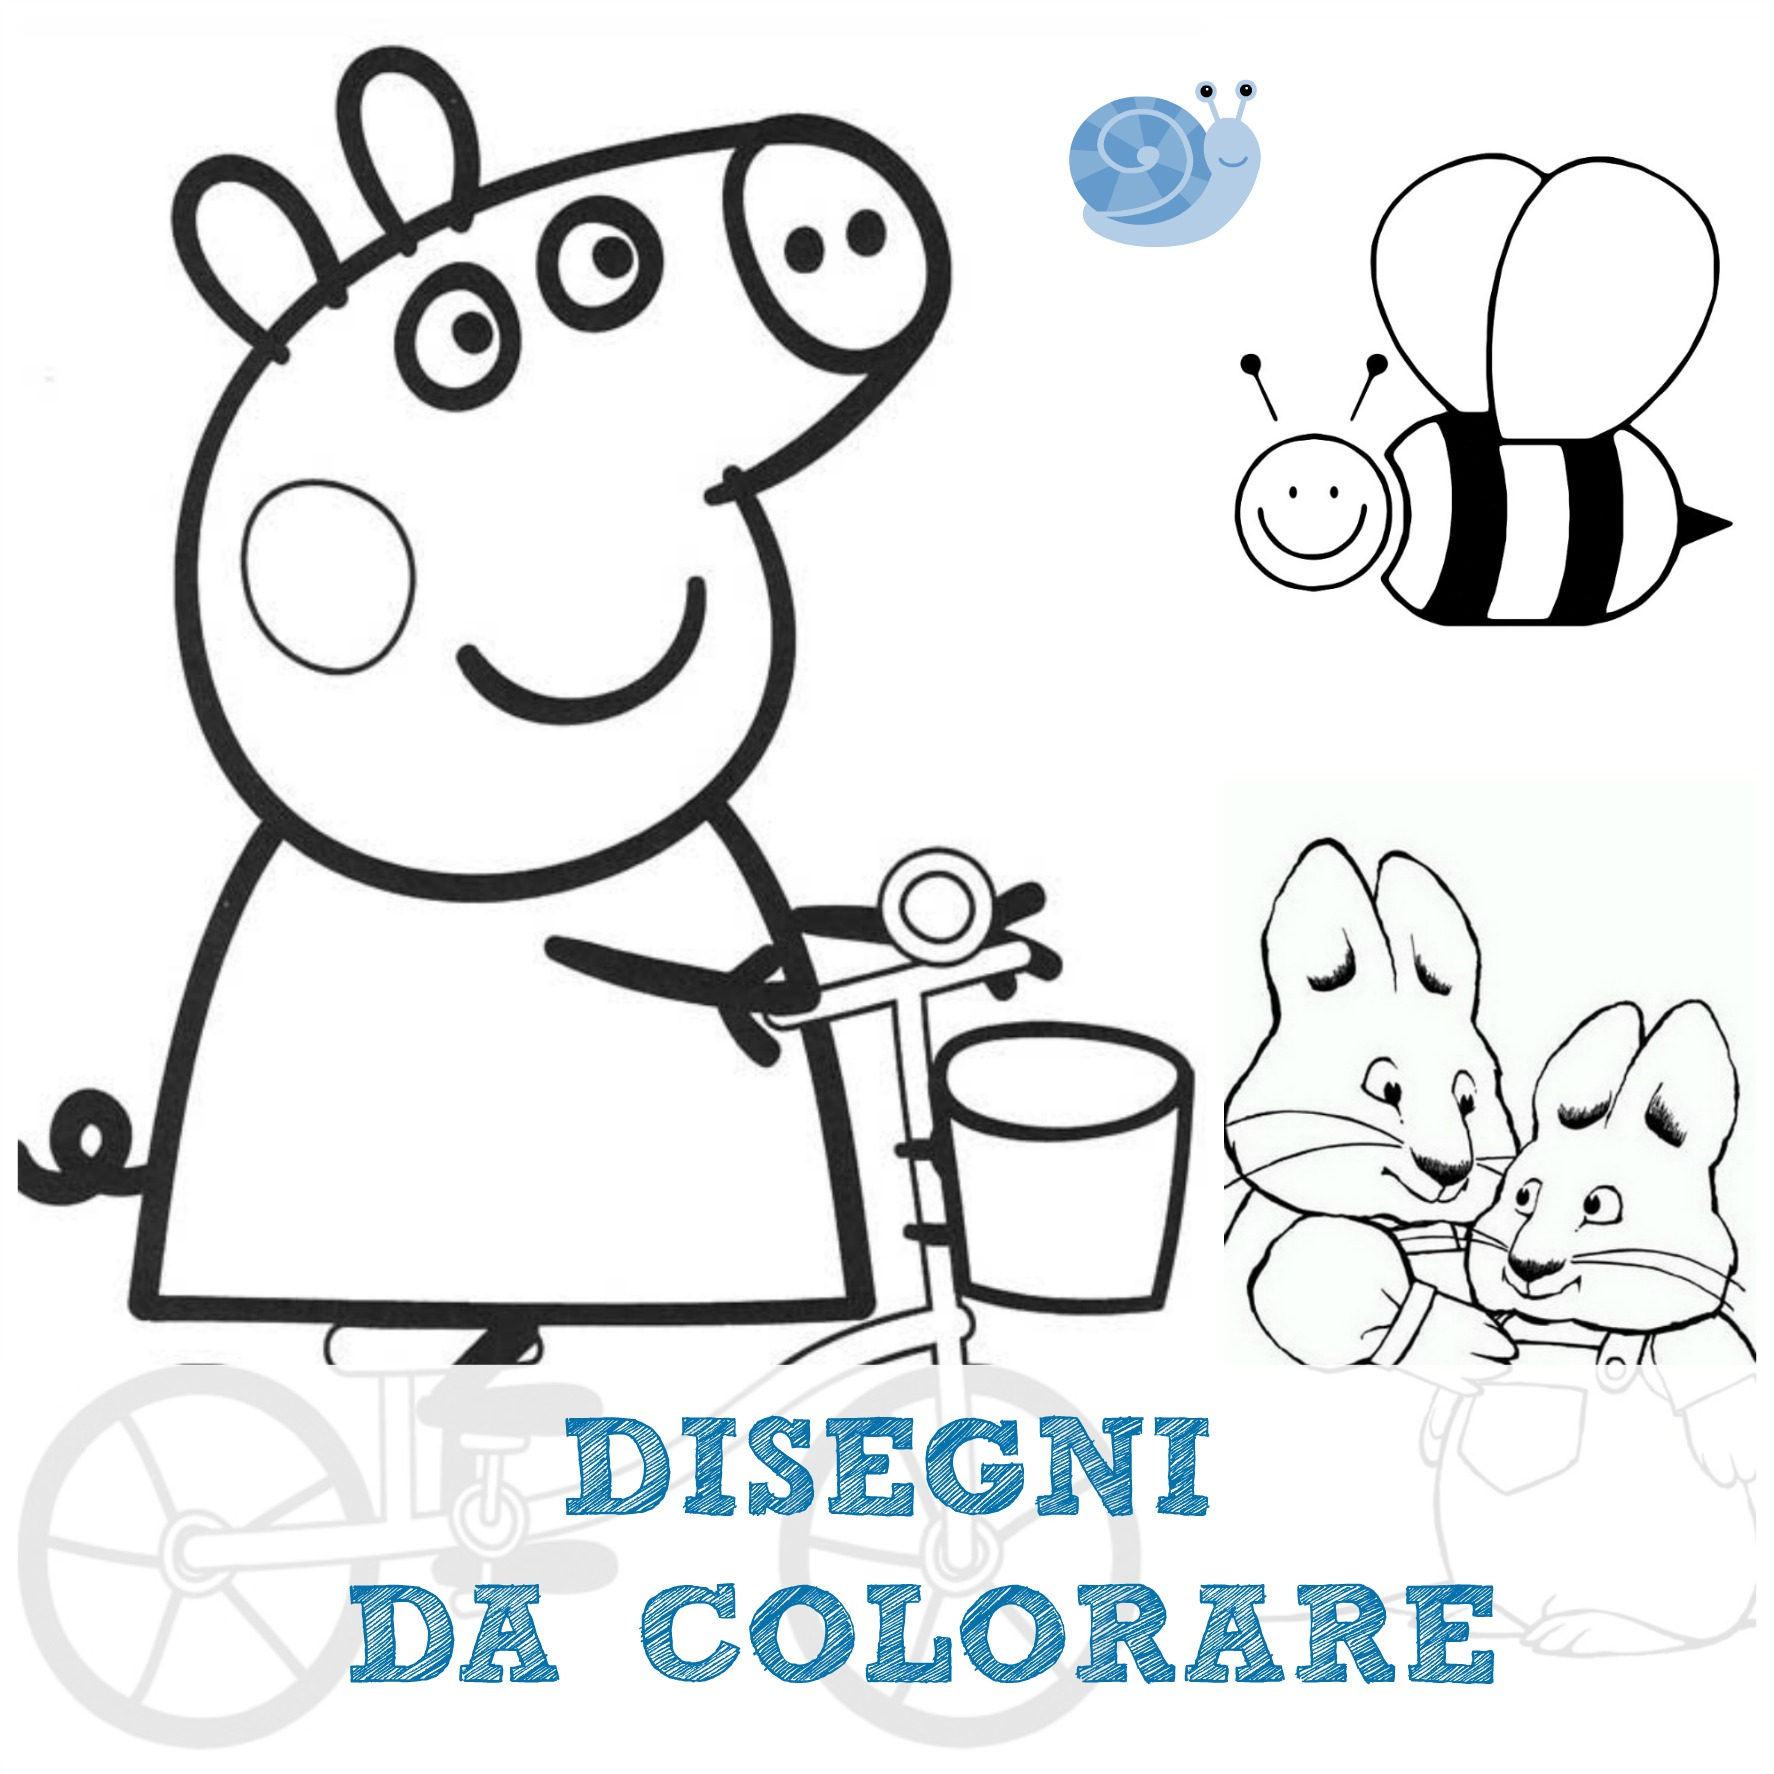 Disegni da colorare babygreen for Disegnare online casa